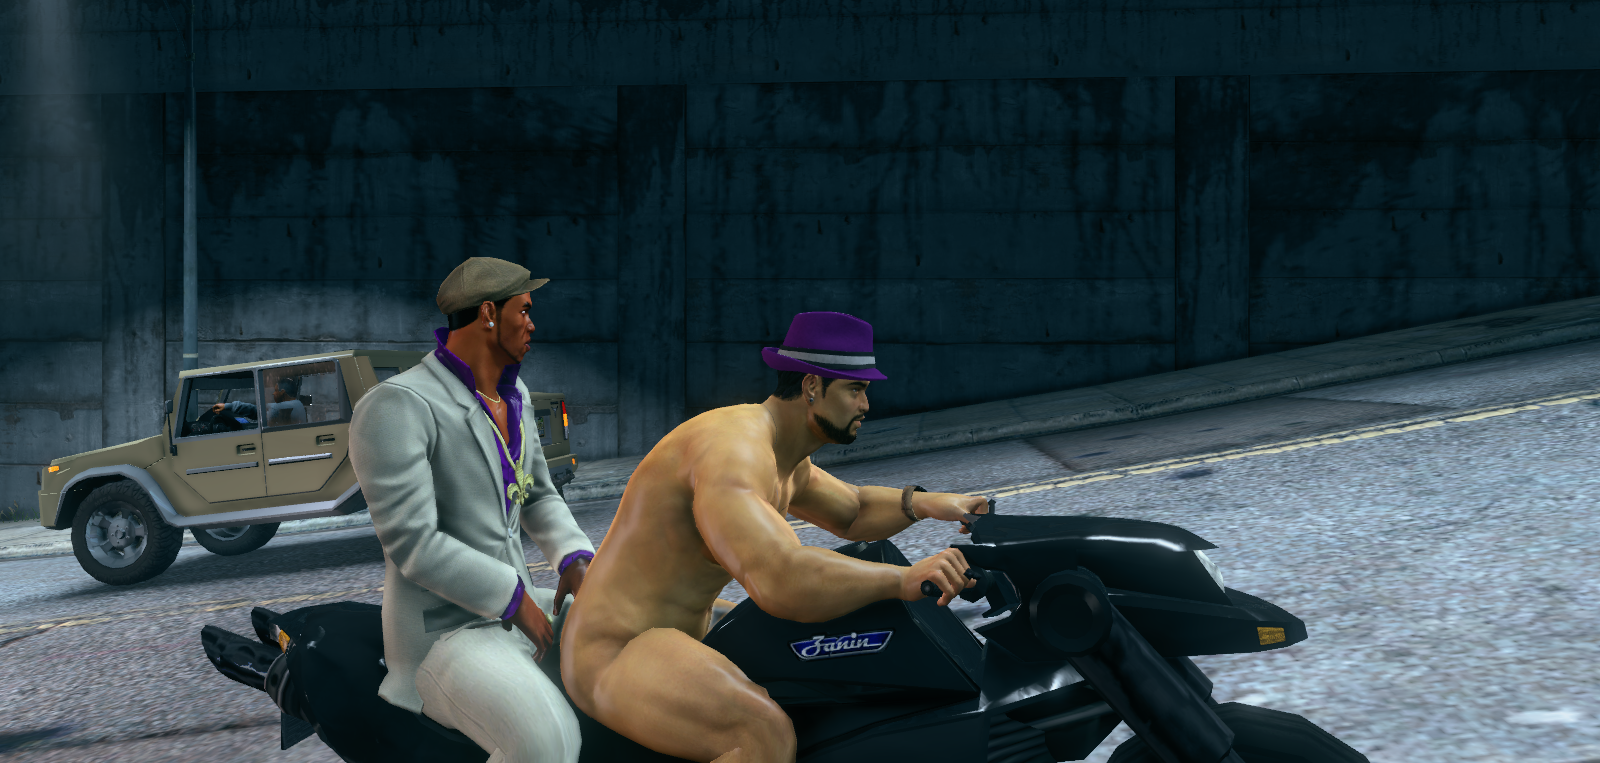 saints row nude